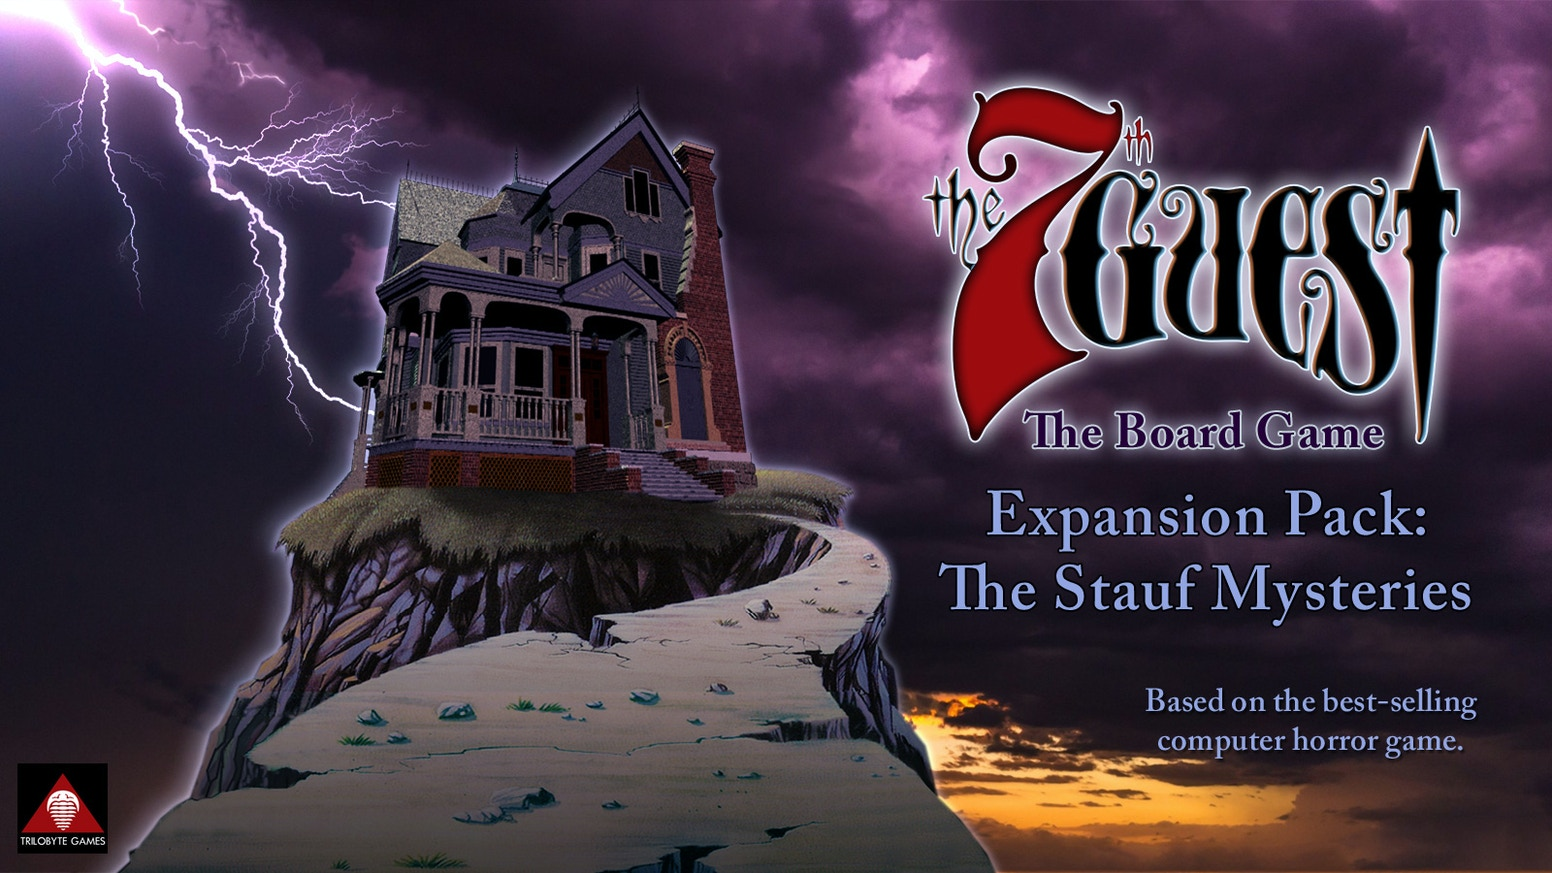 Bringing story and mysteries to The 7th Guest Board Game experience. Coming this Christmas.